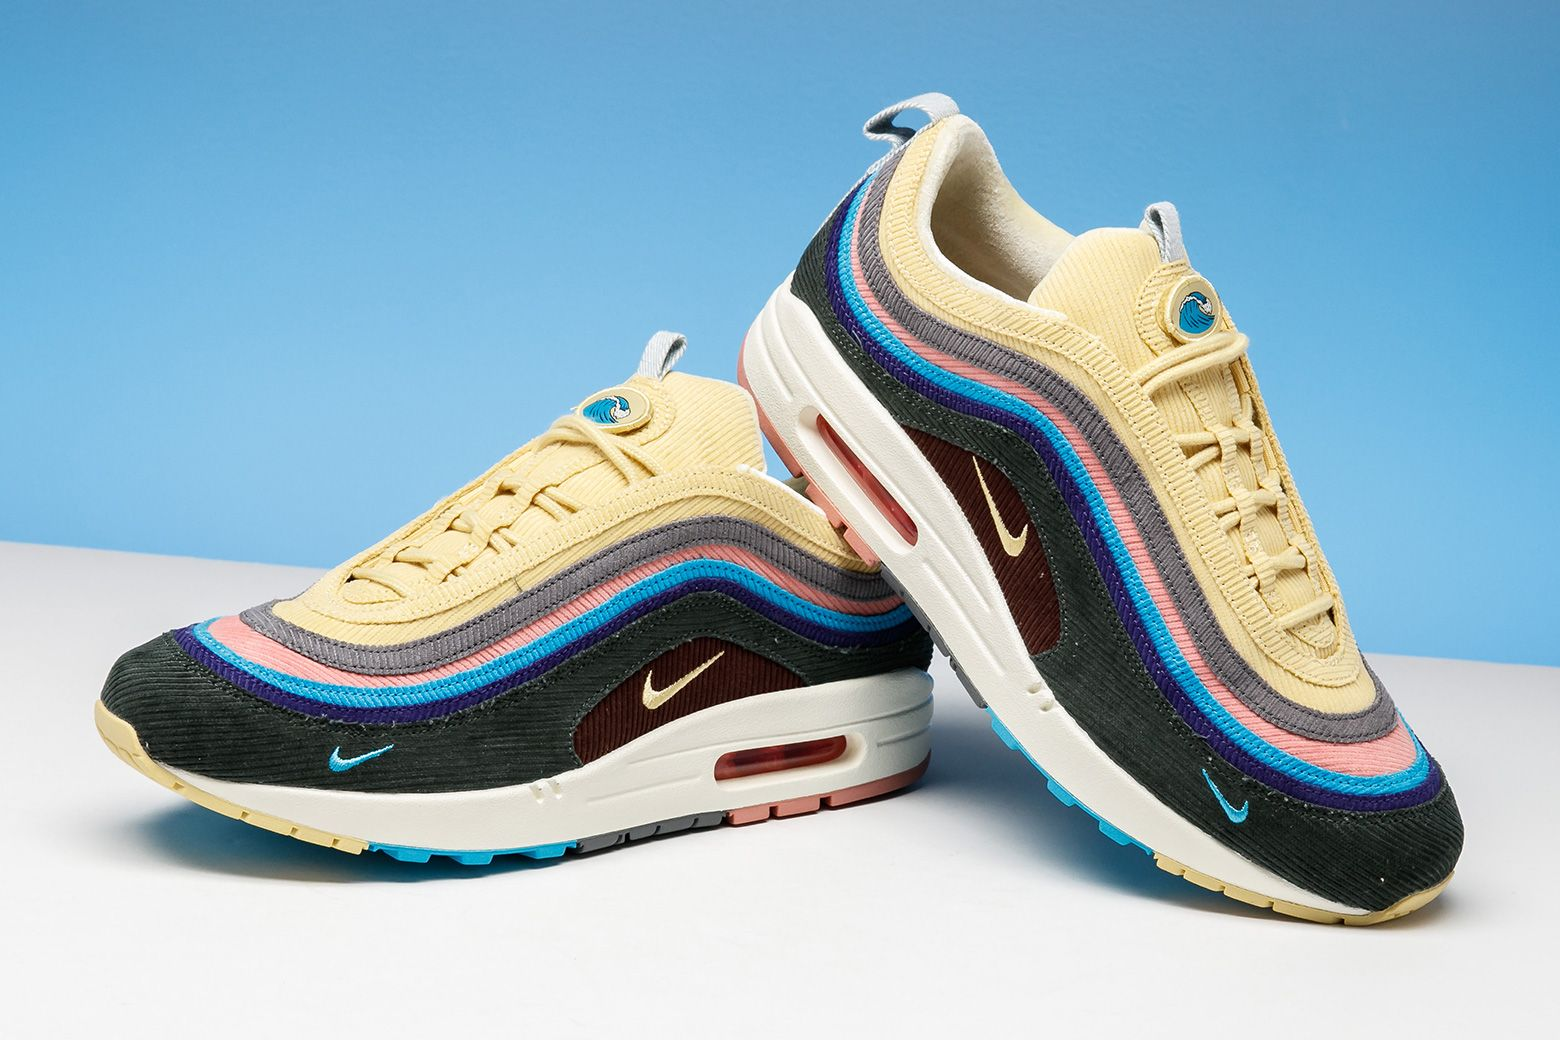 a4541b0ff93b4c Sneaker Trivia  Who collaborated with Nike on this Air Max 1 97 hybrid